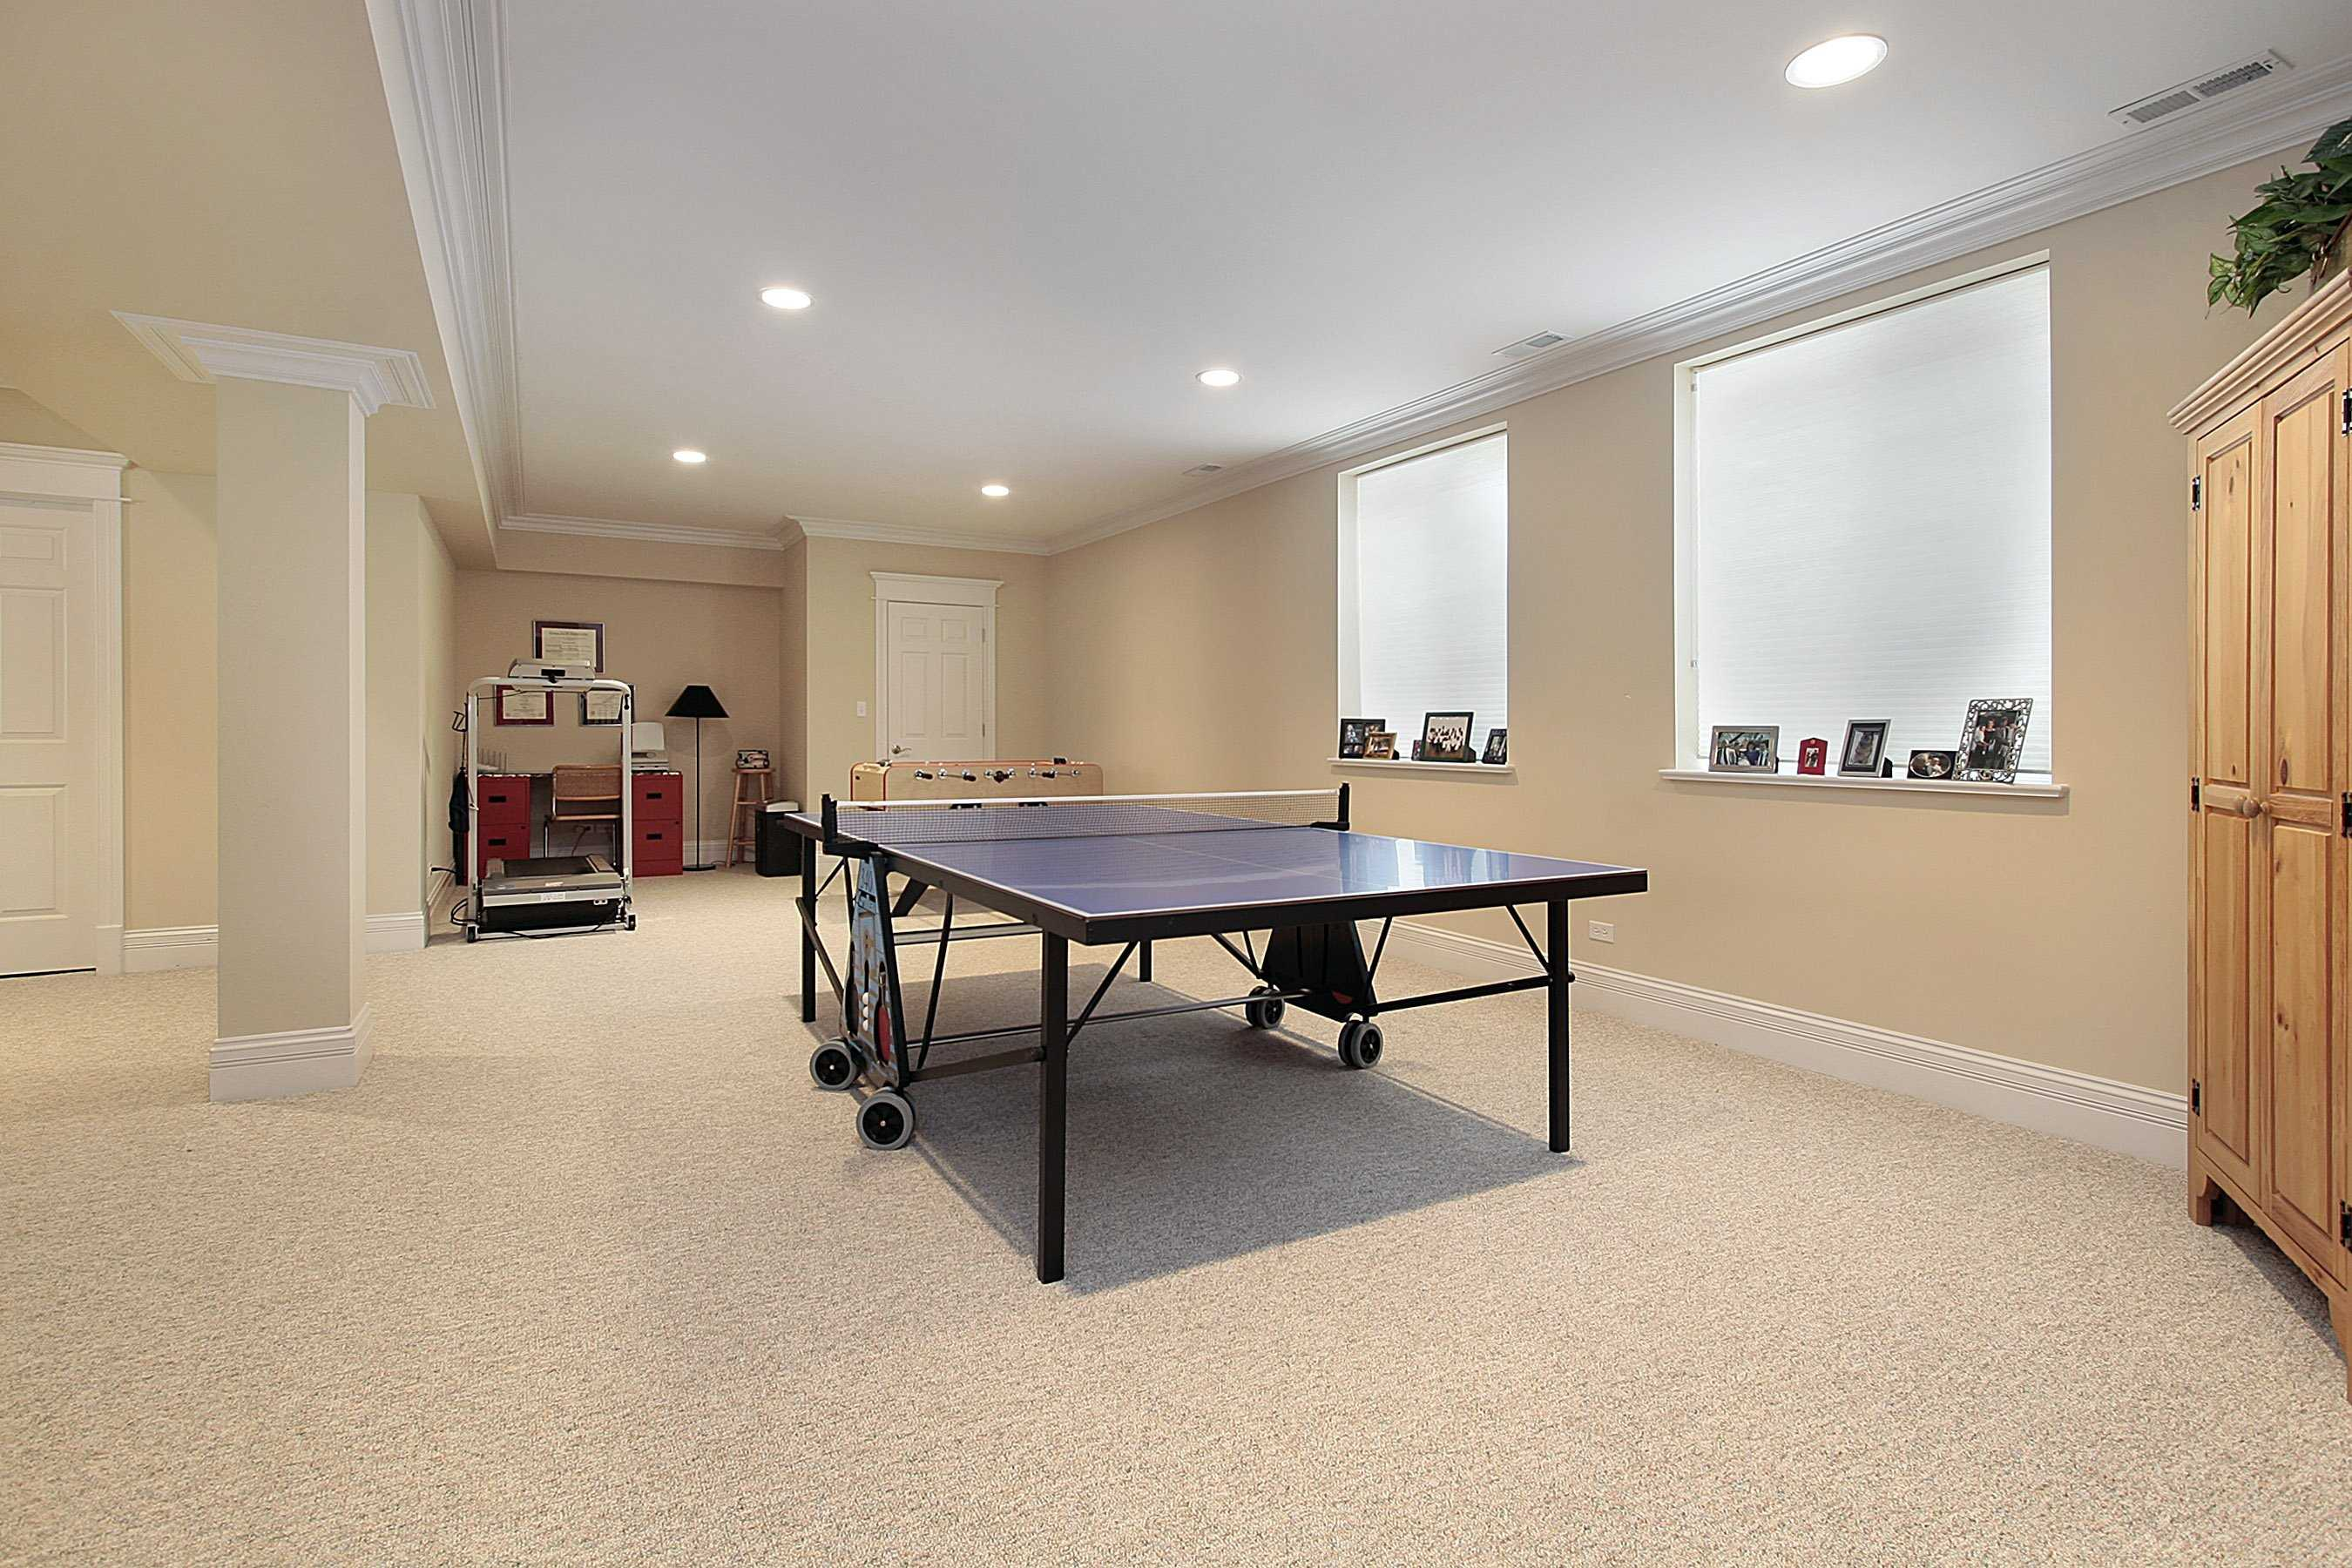 Game room basement remodel 3 interior design ideas - Basements by design ...